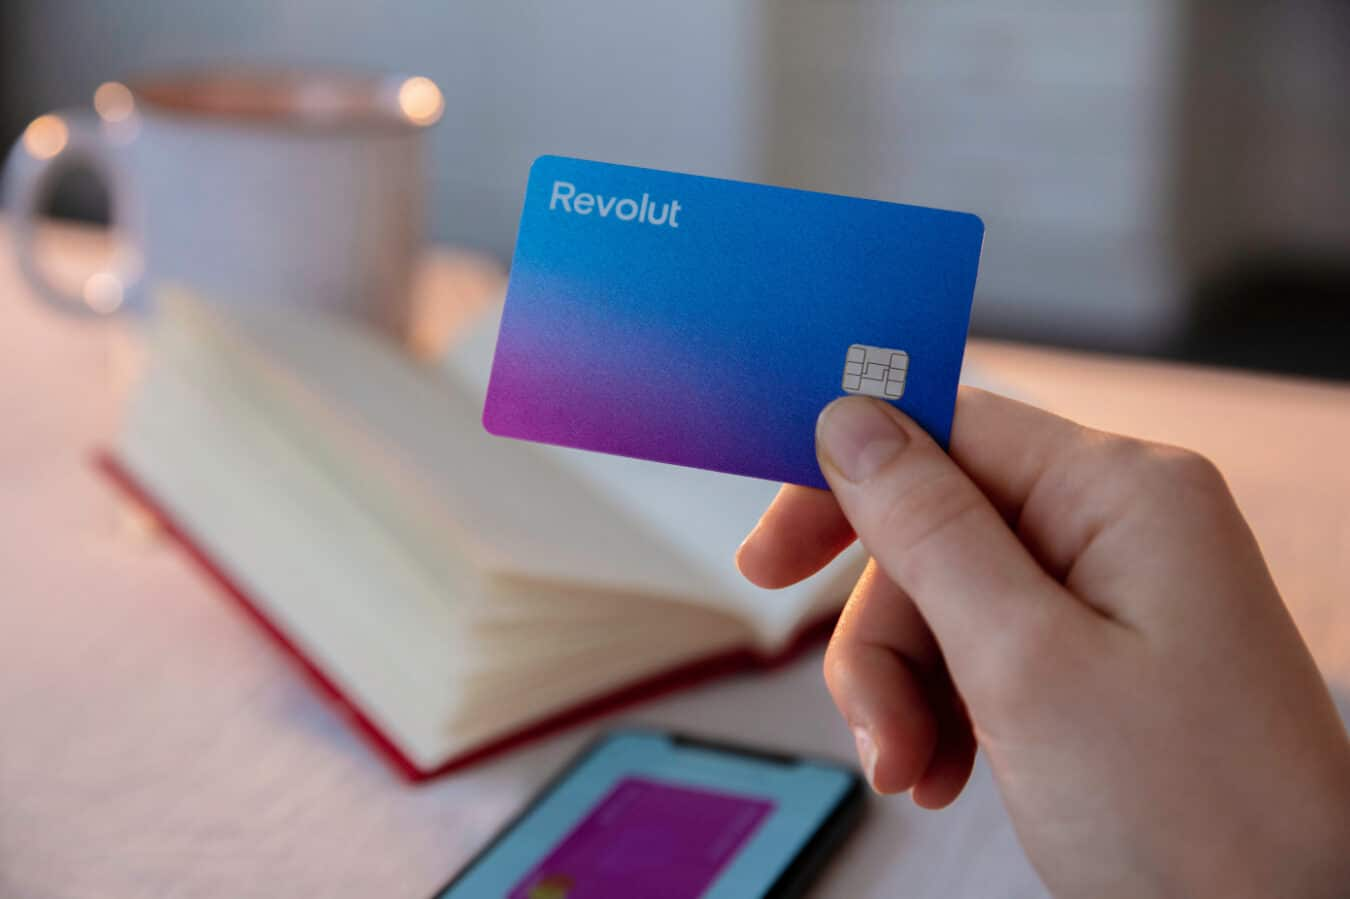 Revolut extends Series D round to $580 million with $80 million in new funding